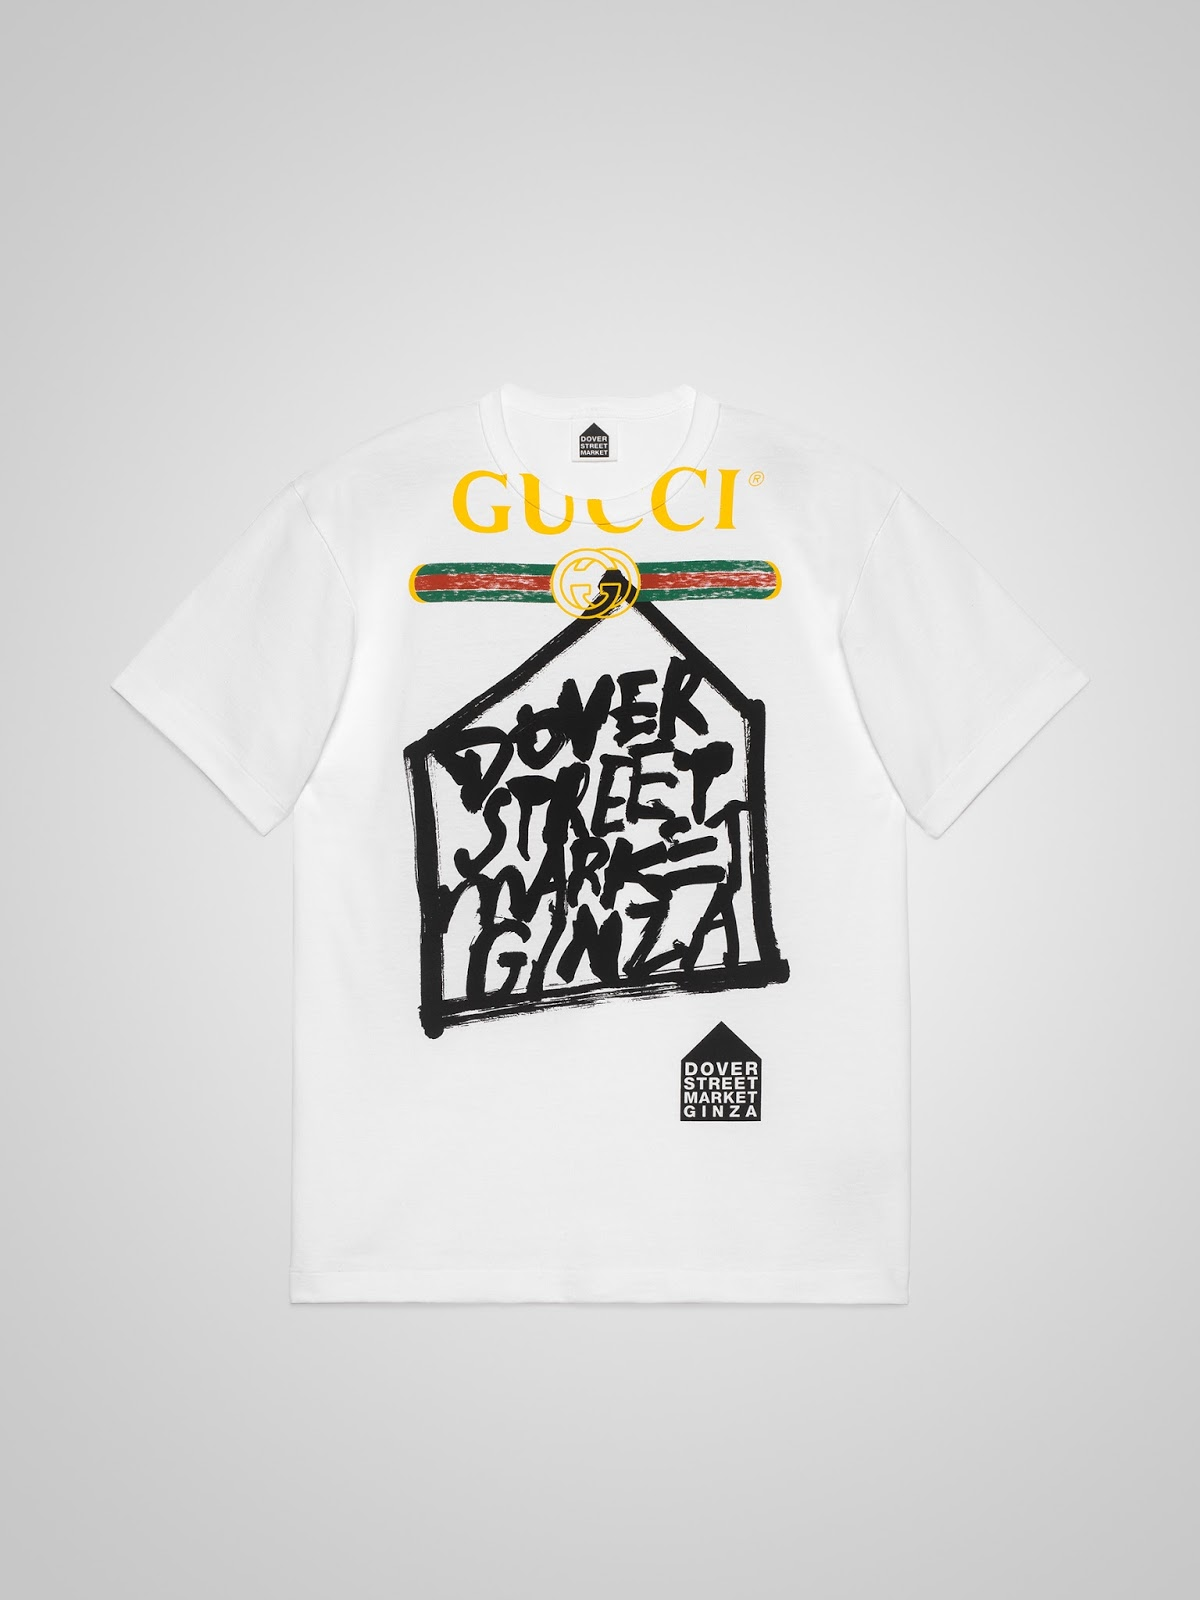 Gucci x Dover Street Market Ginza 5th Anniversary Limited Edition Tees